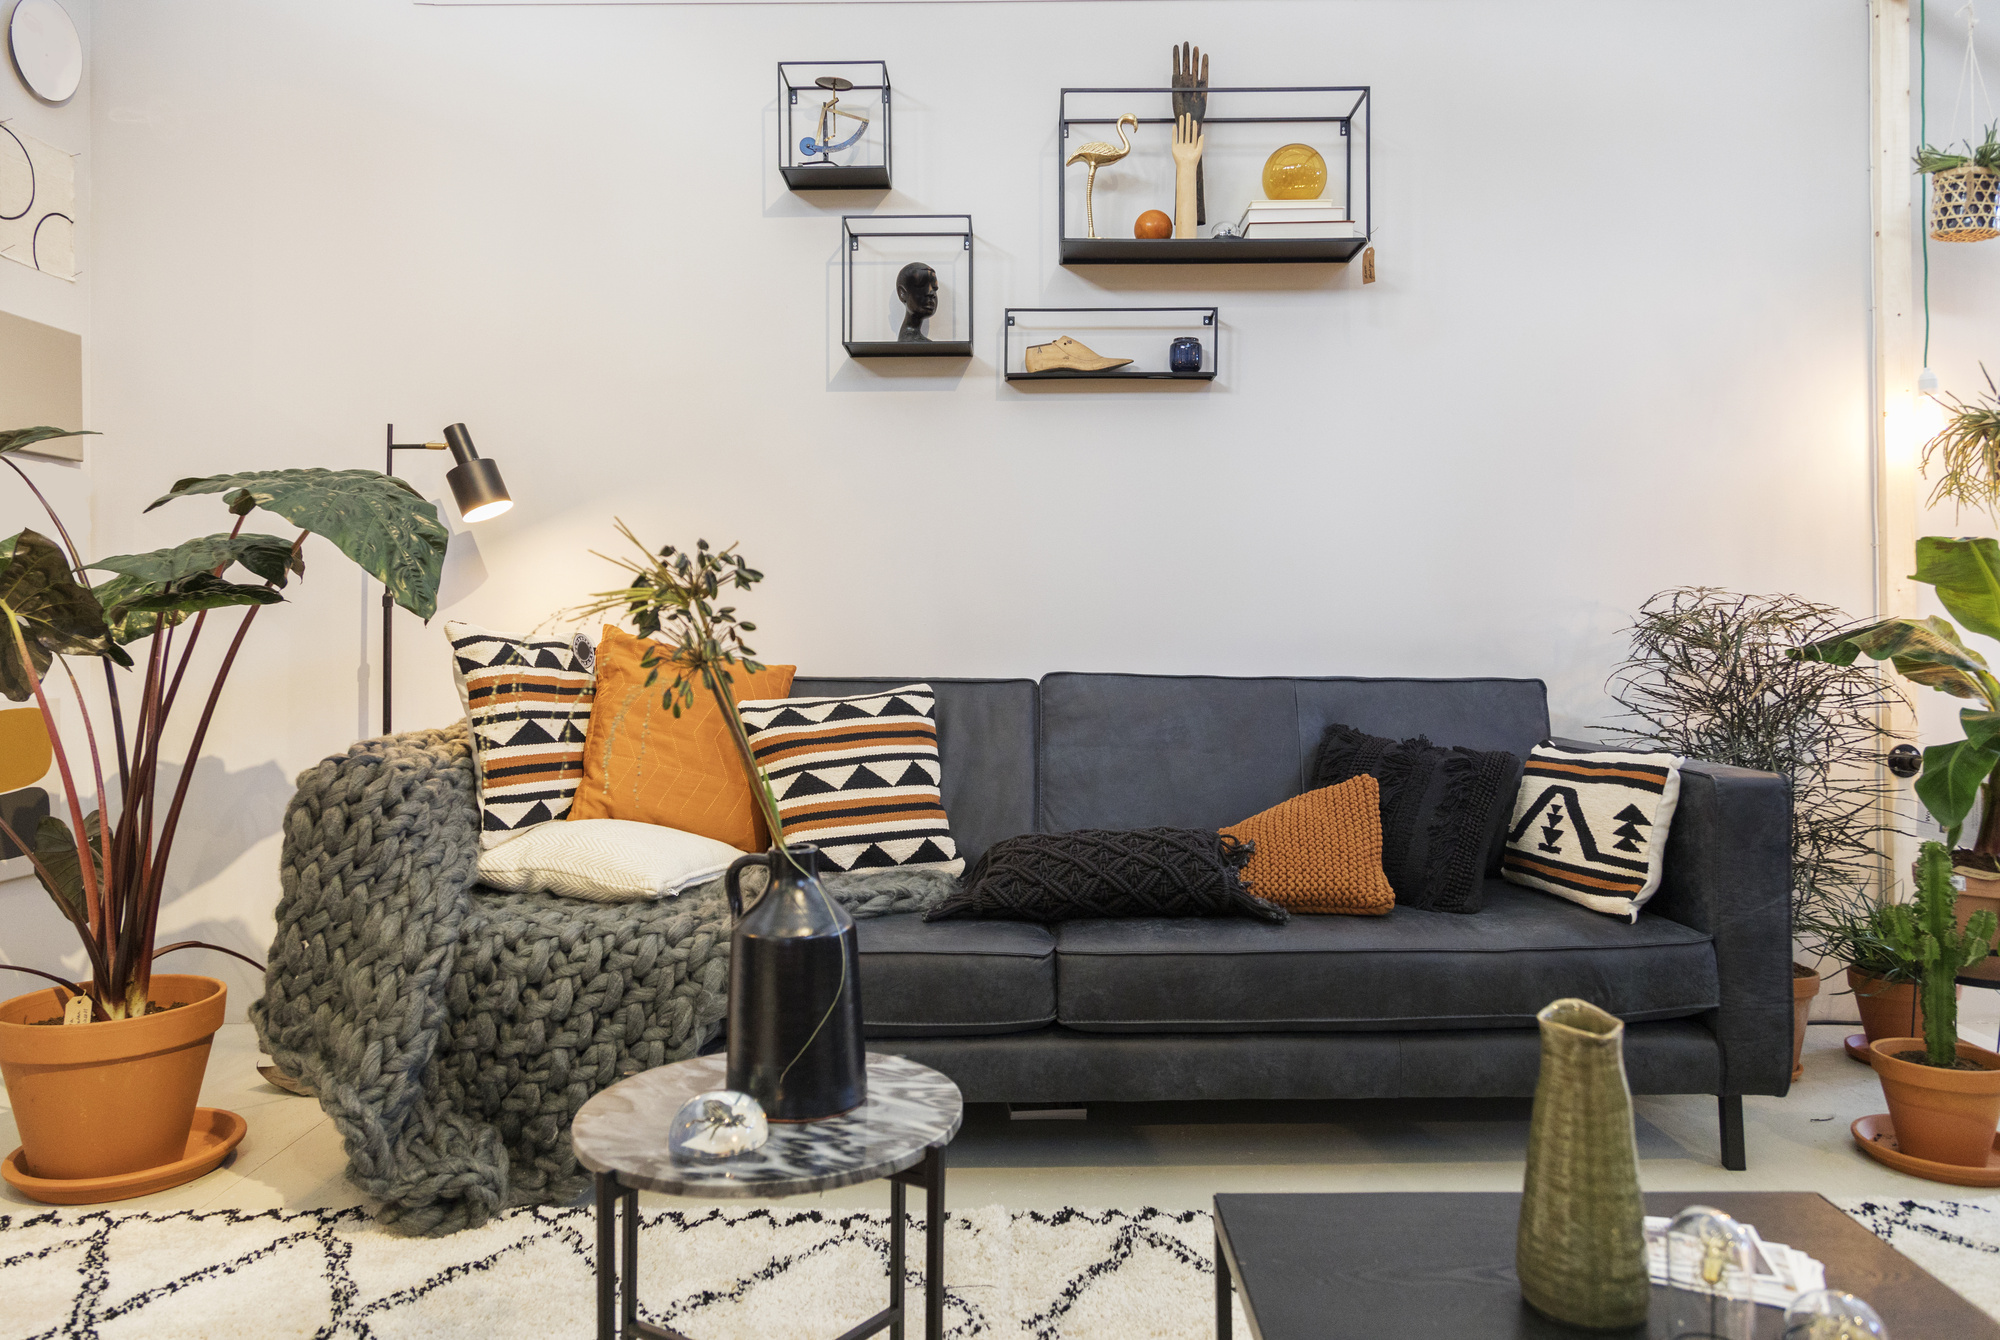 5 Apartment Redecorating Ideas For the New Year